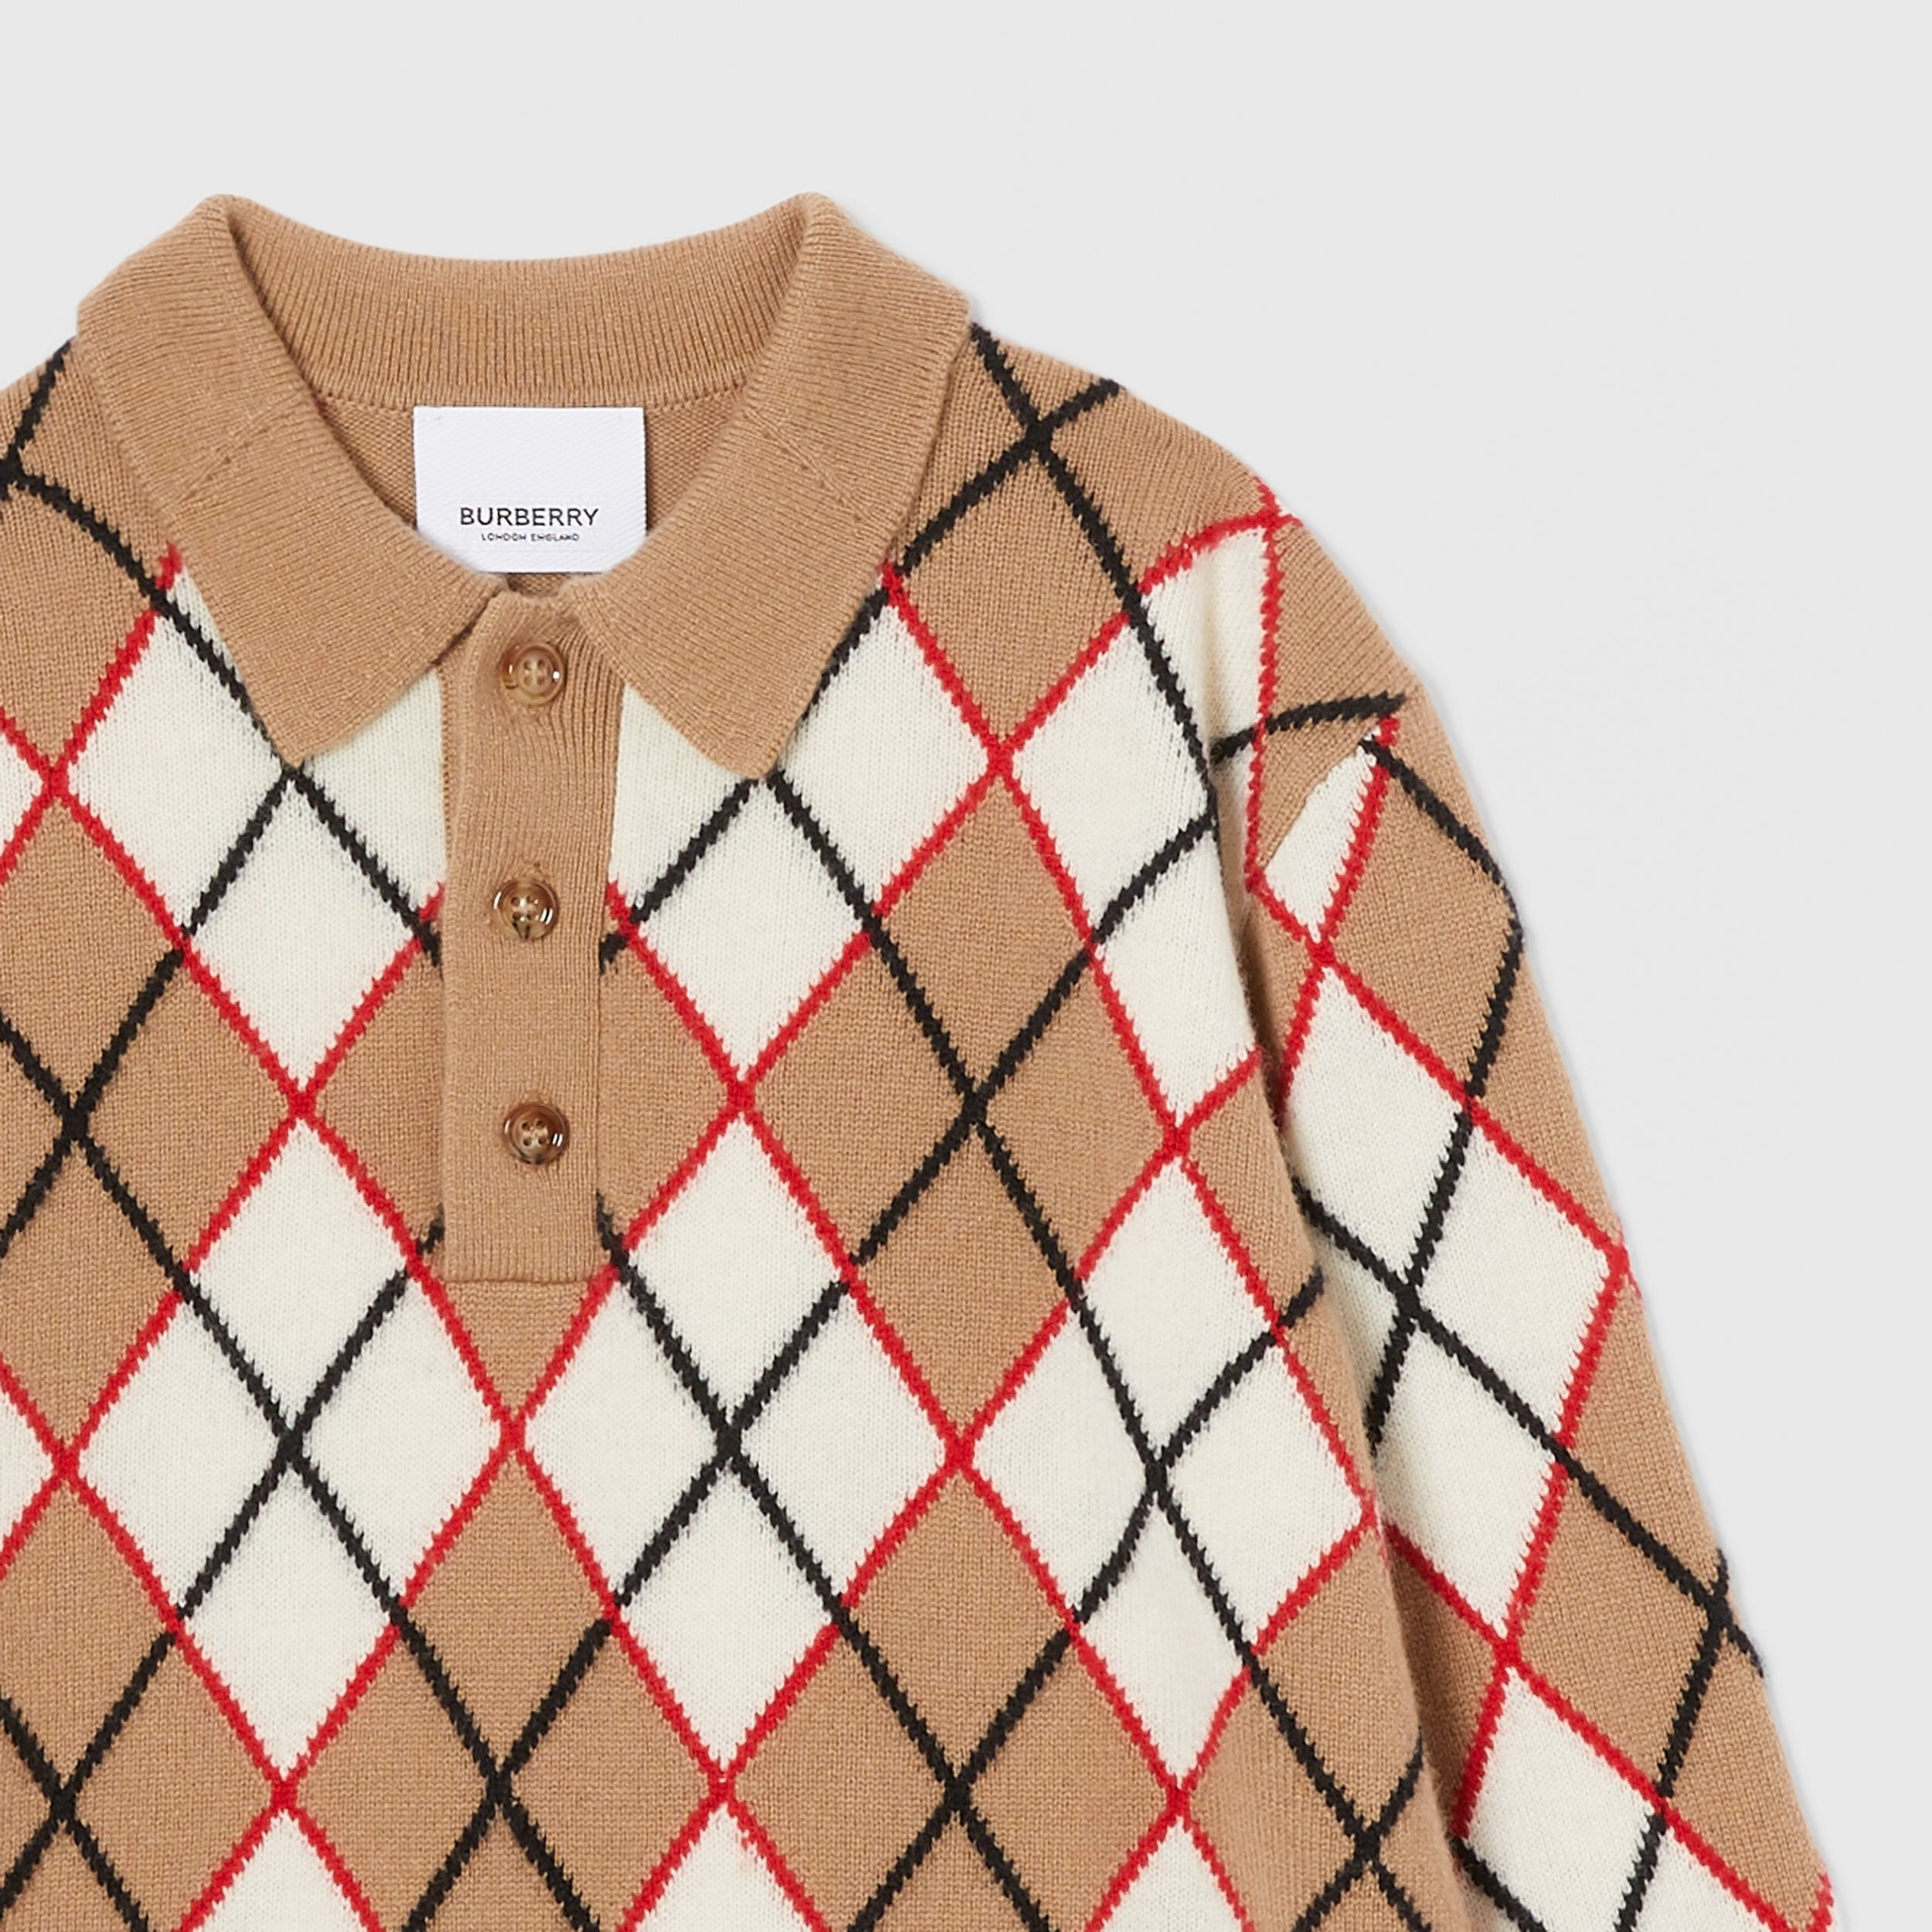 Long-sleeve Argyle Intarsia Wool Cashmere Polo Shirt in Camel | Burberry - 4